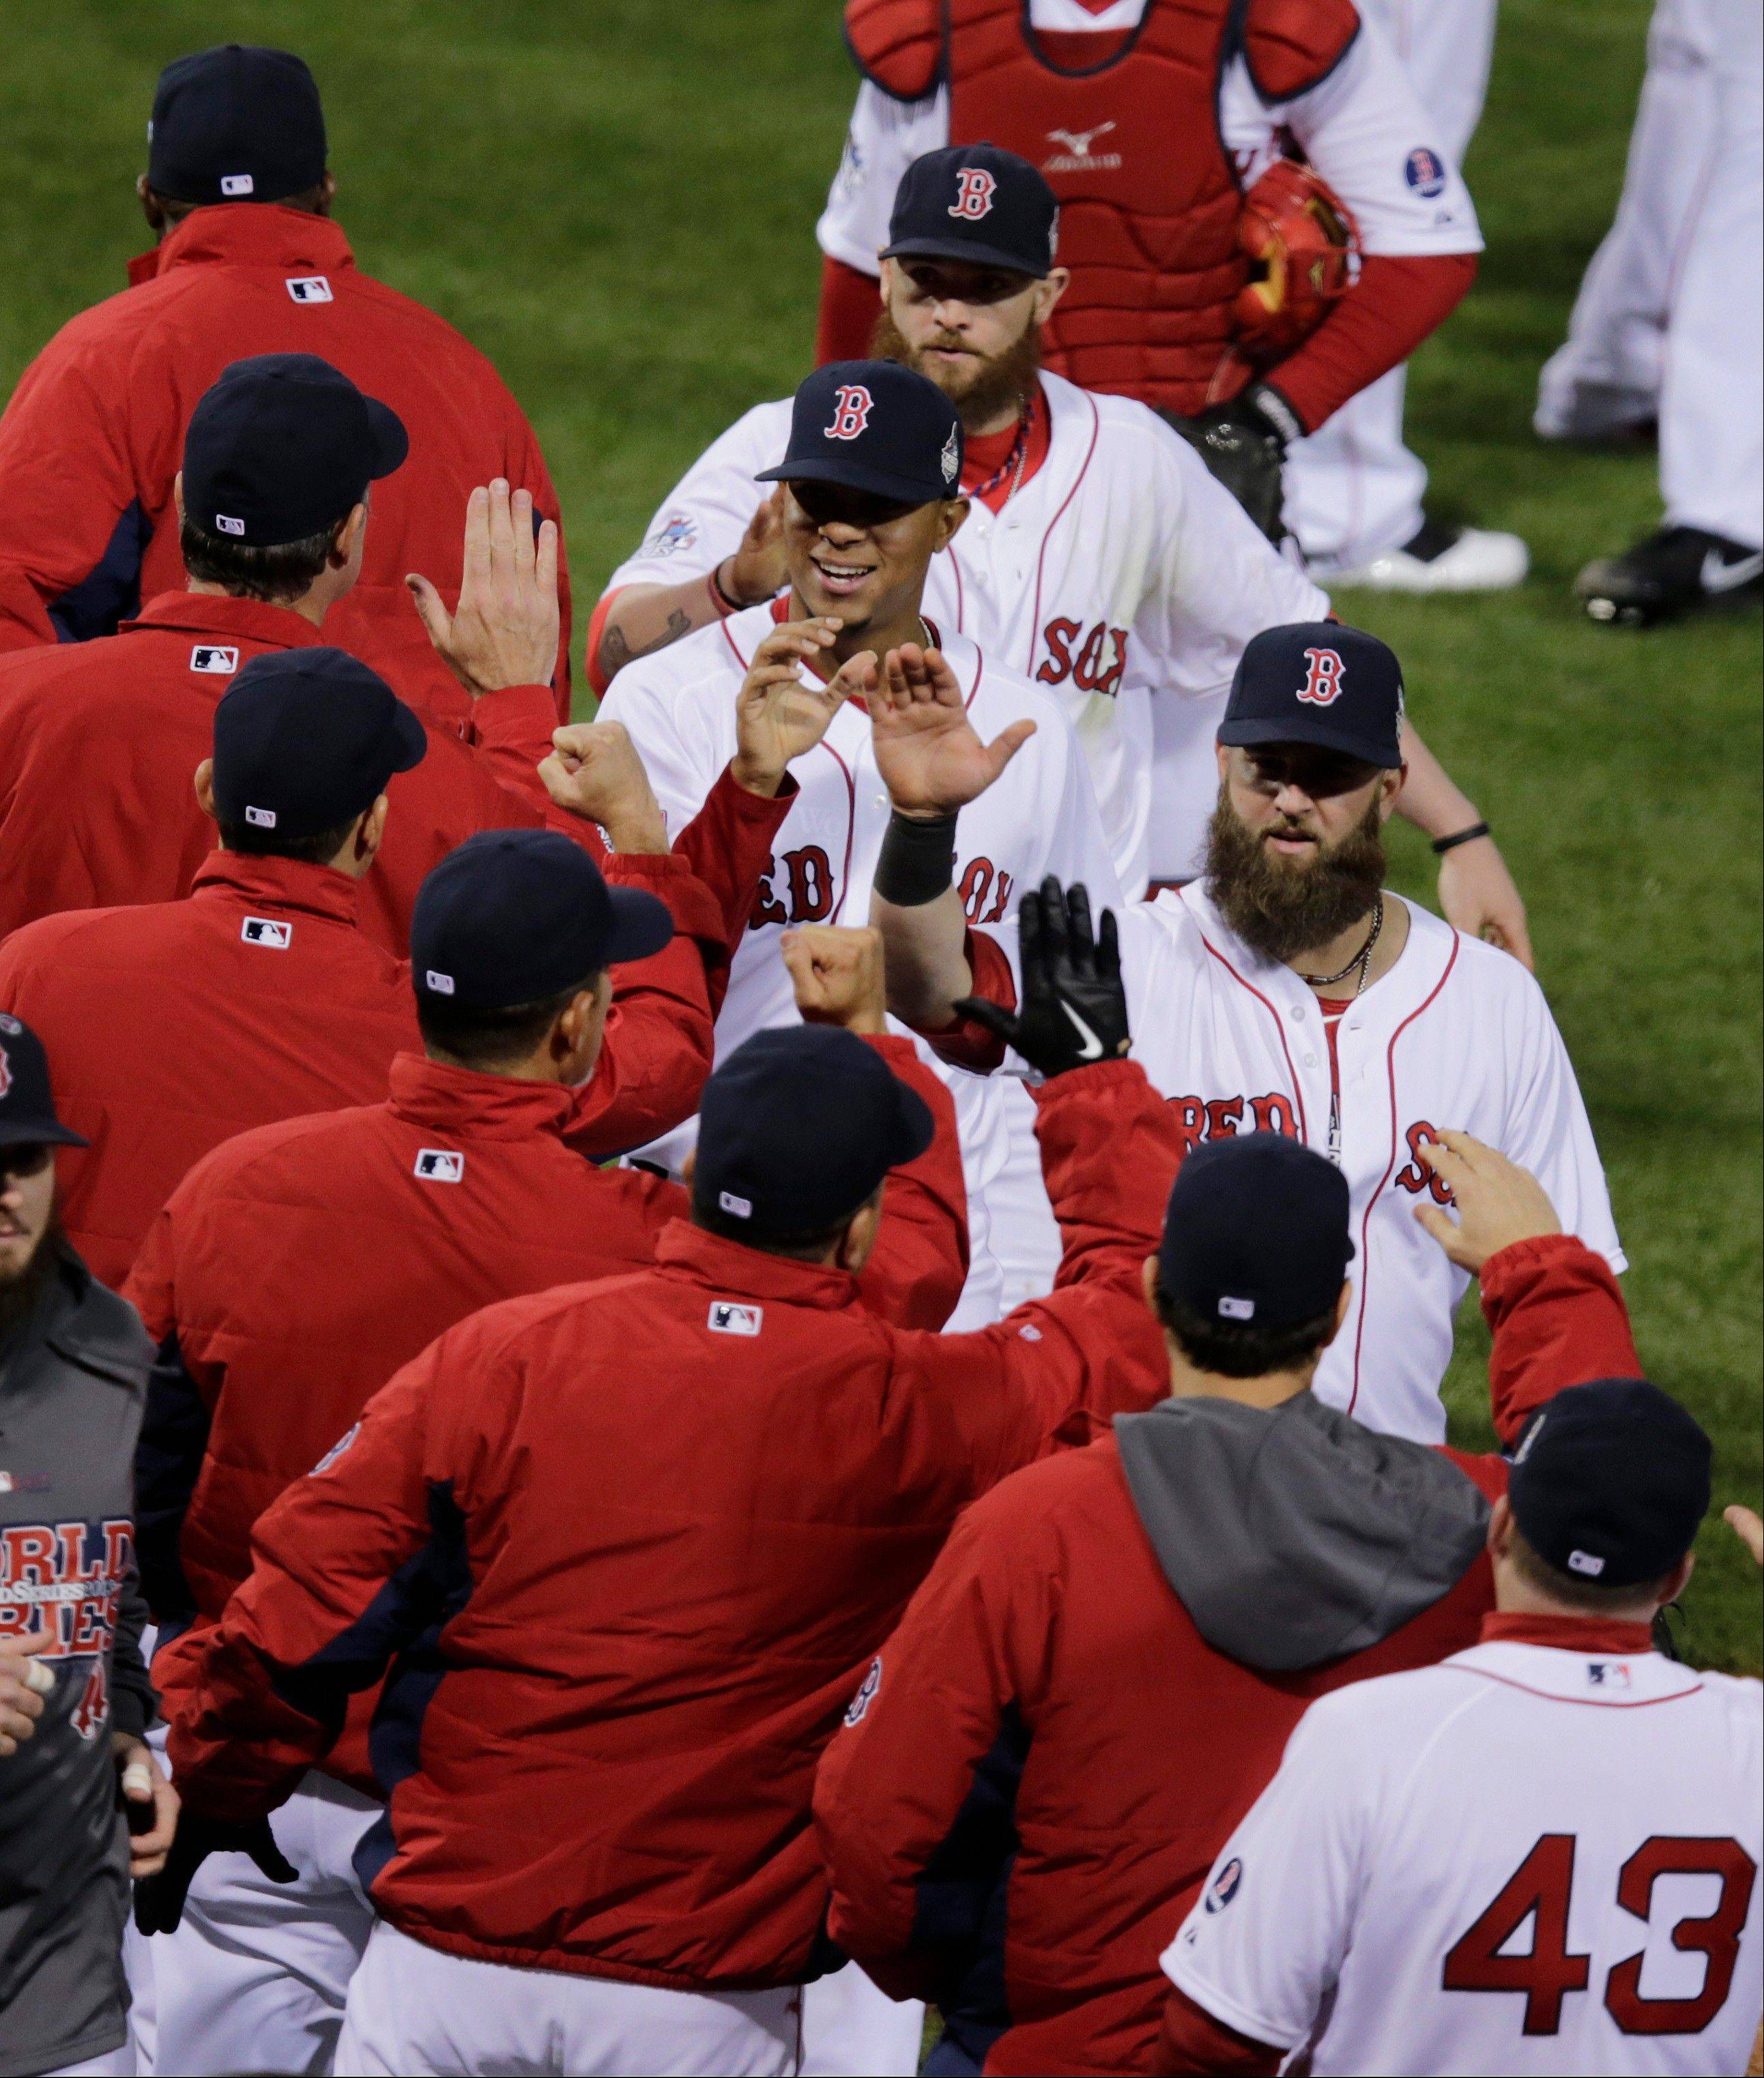 Boston players celebrate after Game 1 of the World Series against the St. Louis Cardinals. The Red Sox won 8-1 Wednesday night at home.